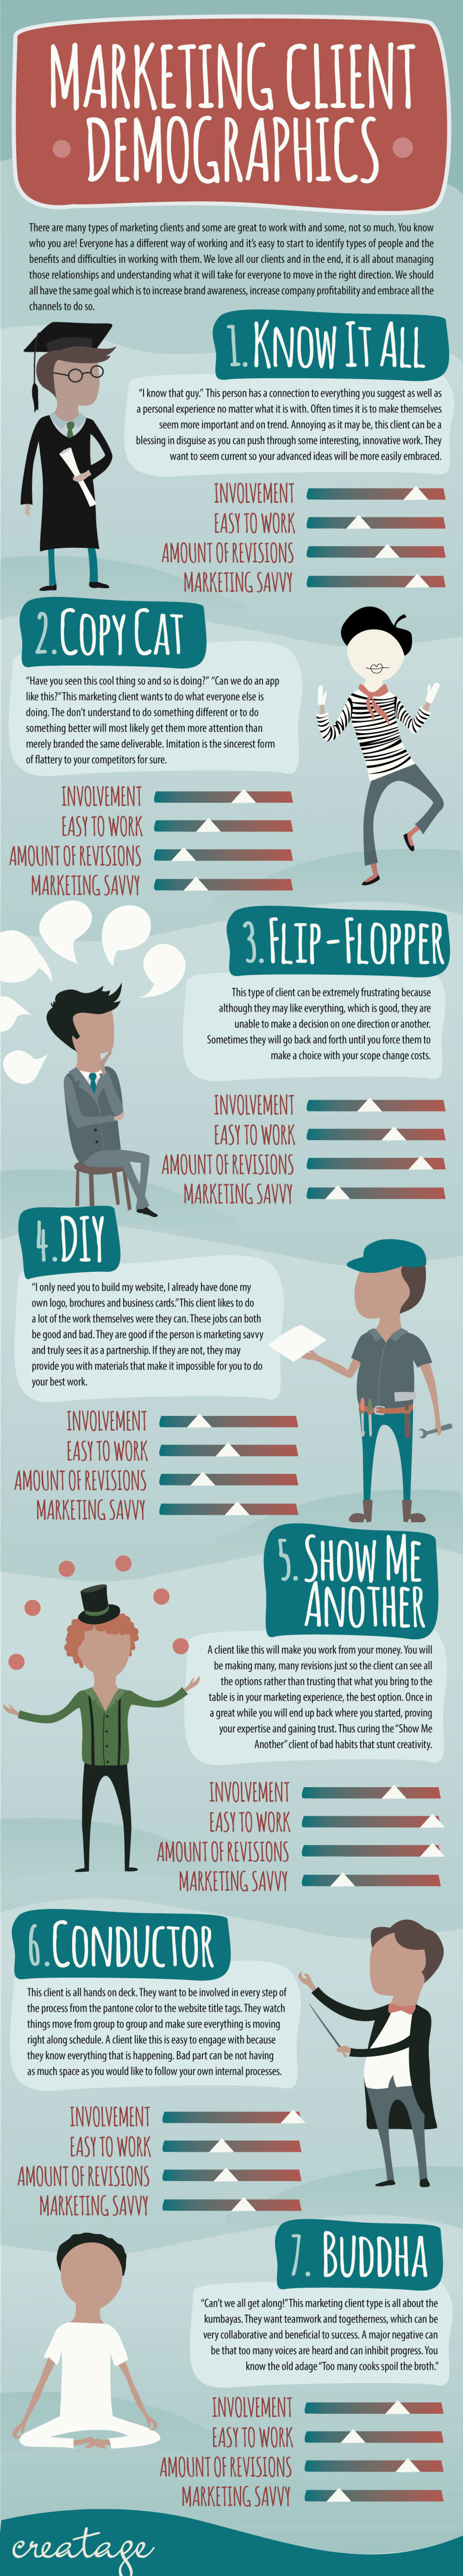 Marketing Client Demographics Infographic